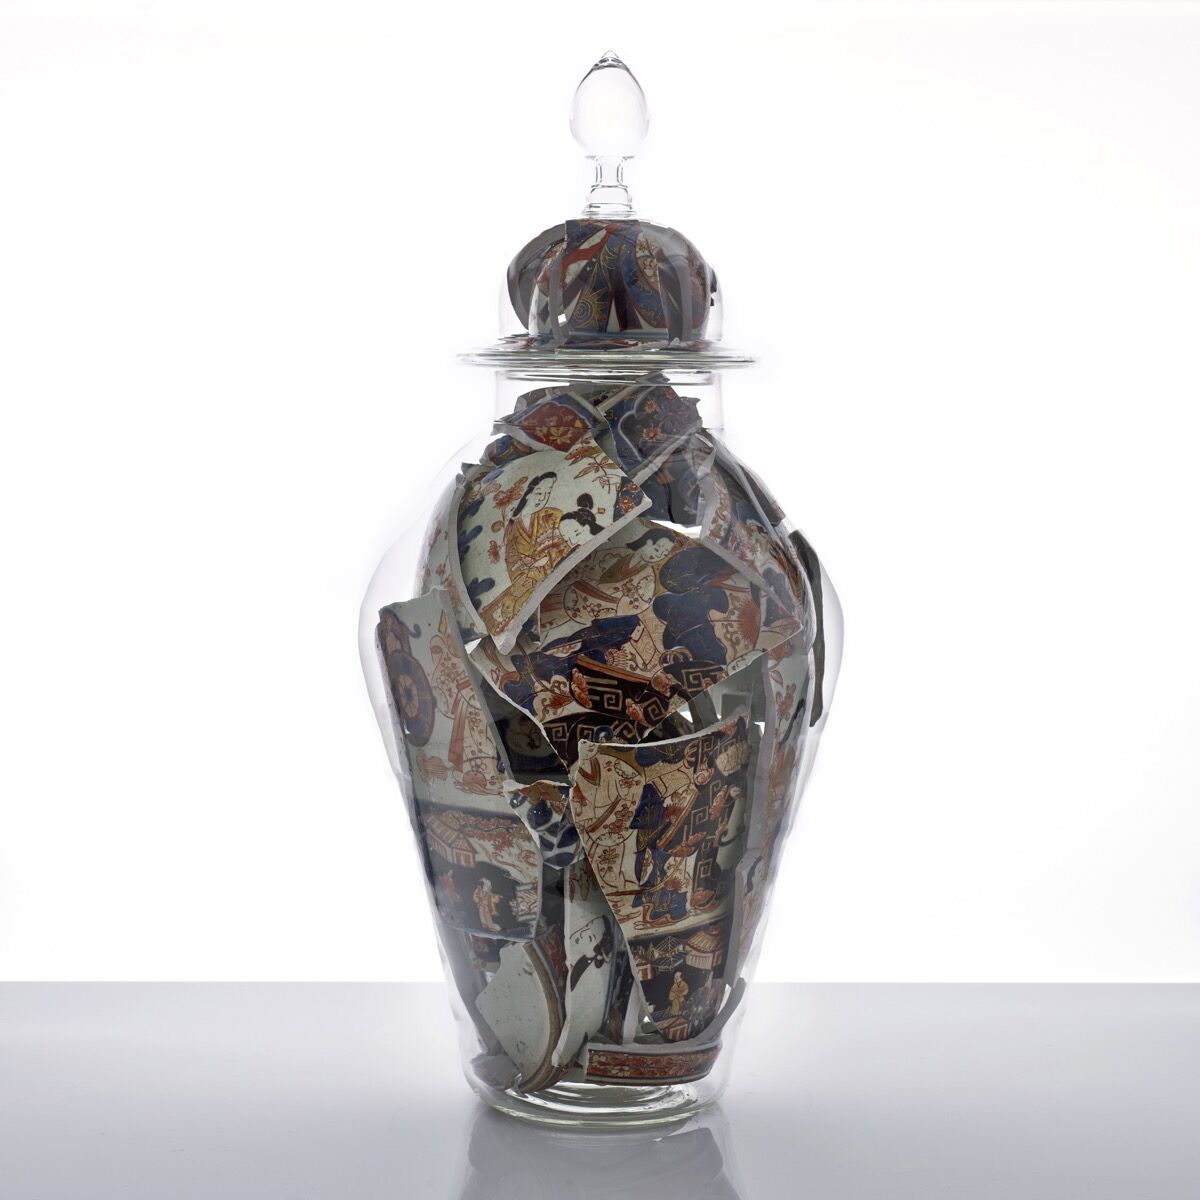 Bouke de Vries, Memory Vessel XLVIII, 2016 on view at Adrian Sassoon at TEFAF Maastricht, 2017. Courtesy of TEFAF Maastricht.